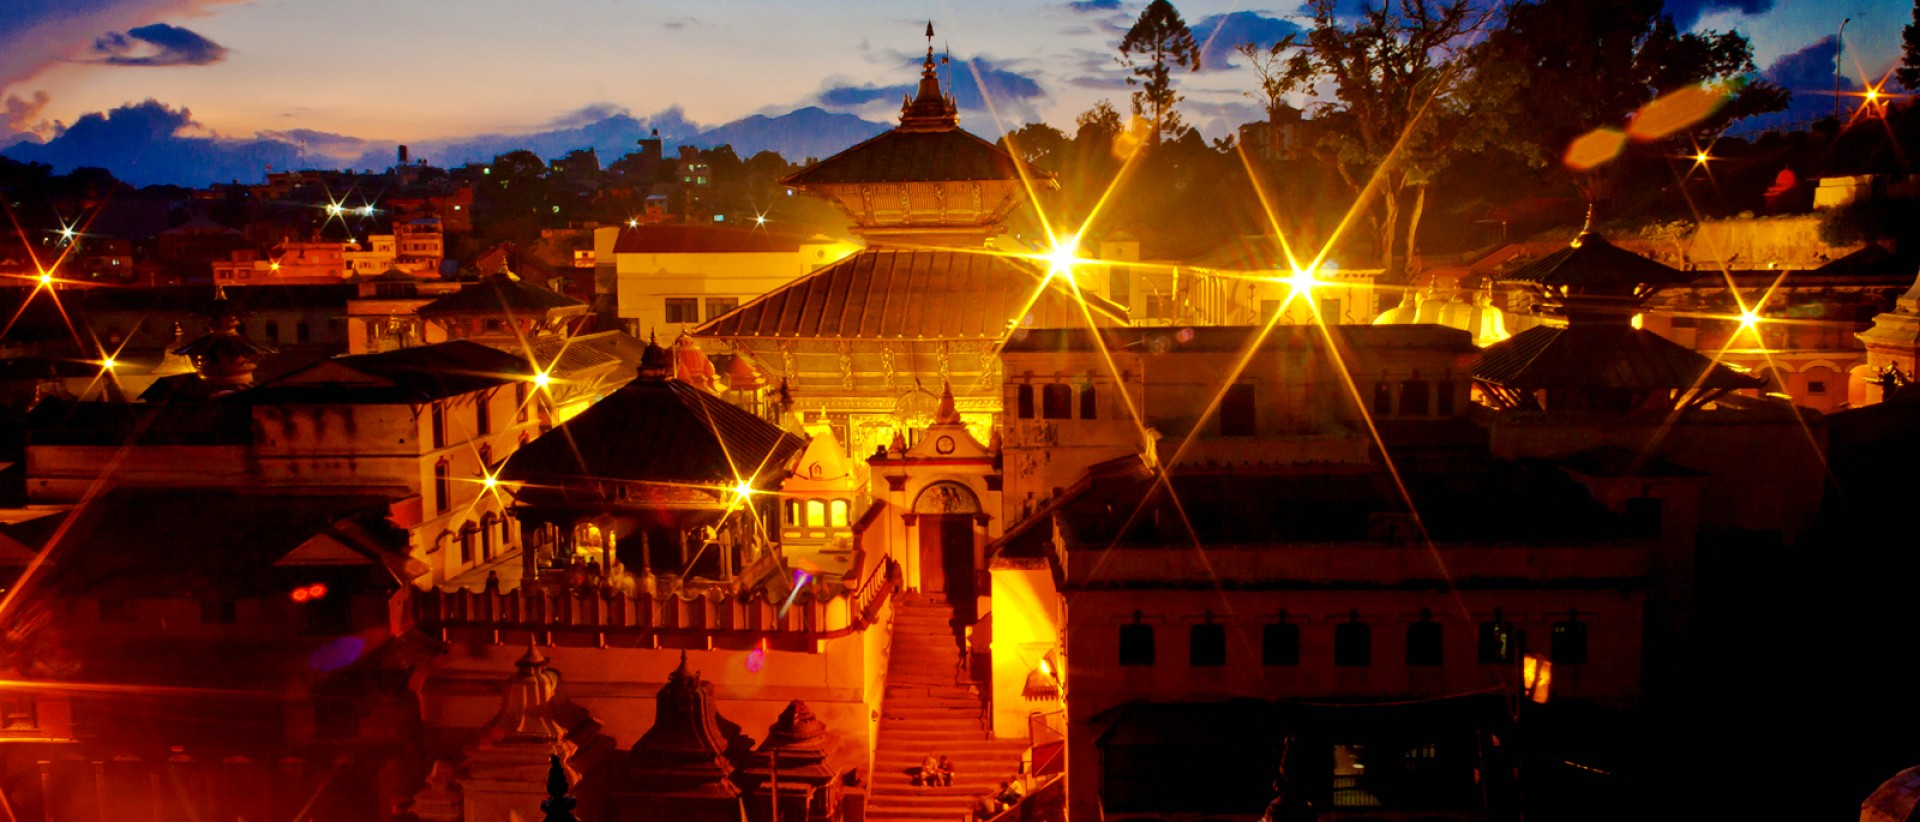 Holy Pashupatinath Temple - Shivaratri night